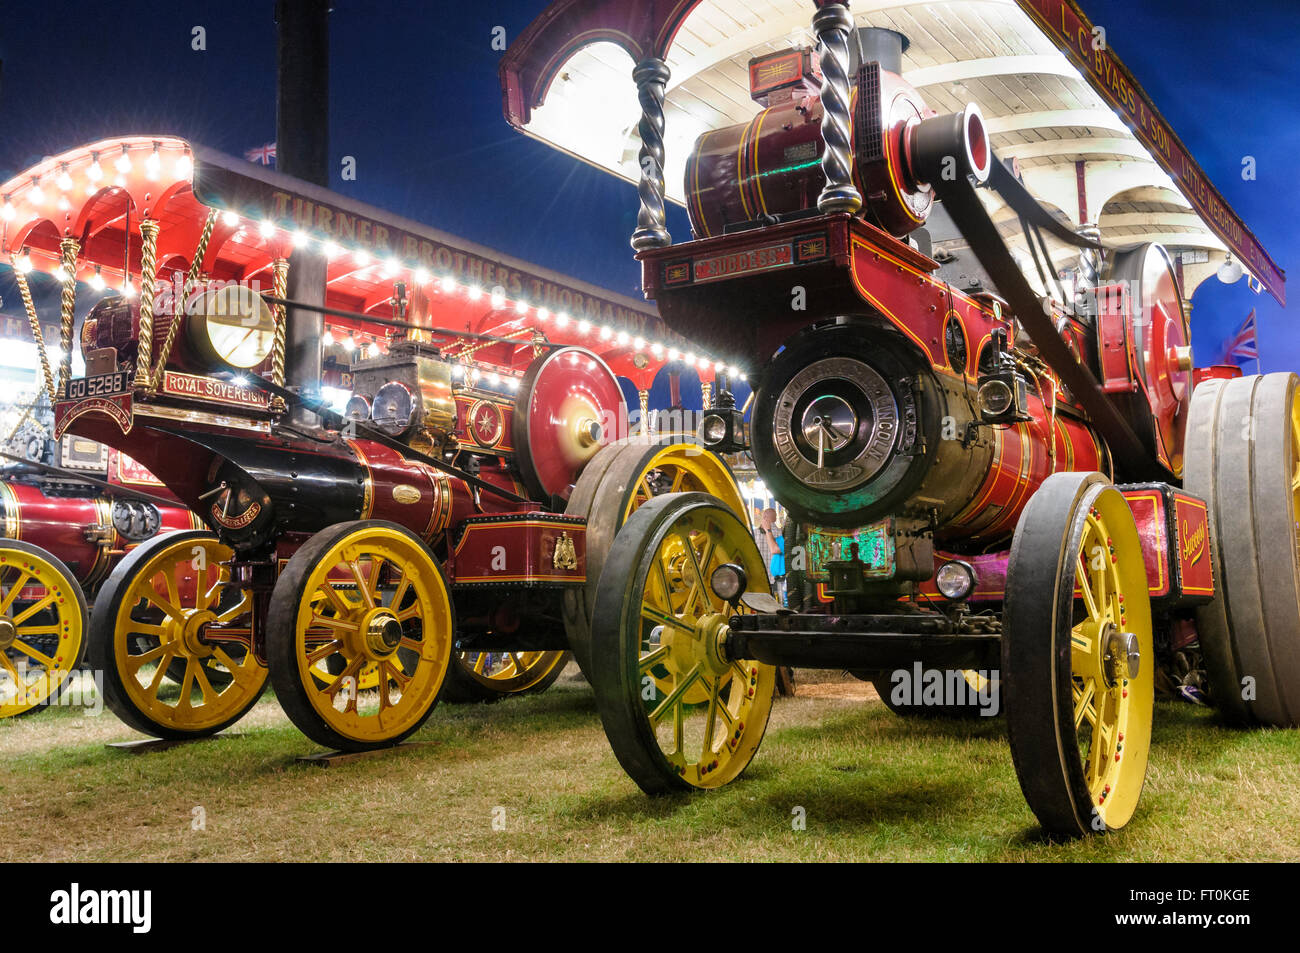 Showman's Conversion road locomotives on display at the Great Dorset Steam Fair, Tarrant Hinton, England - Stock Image